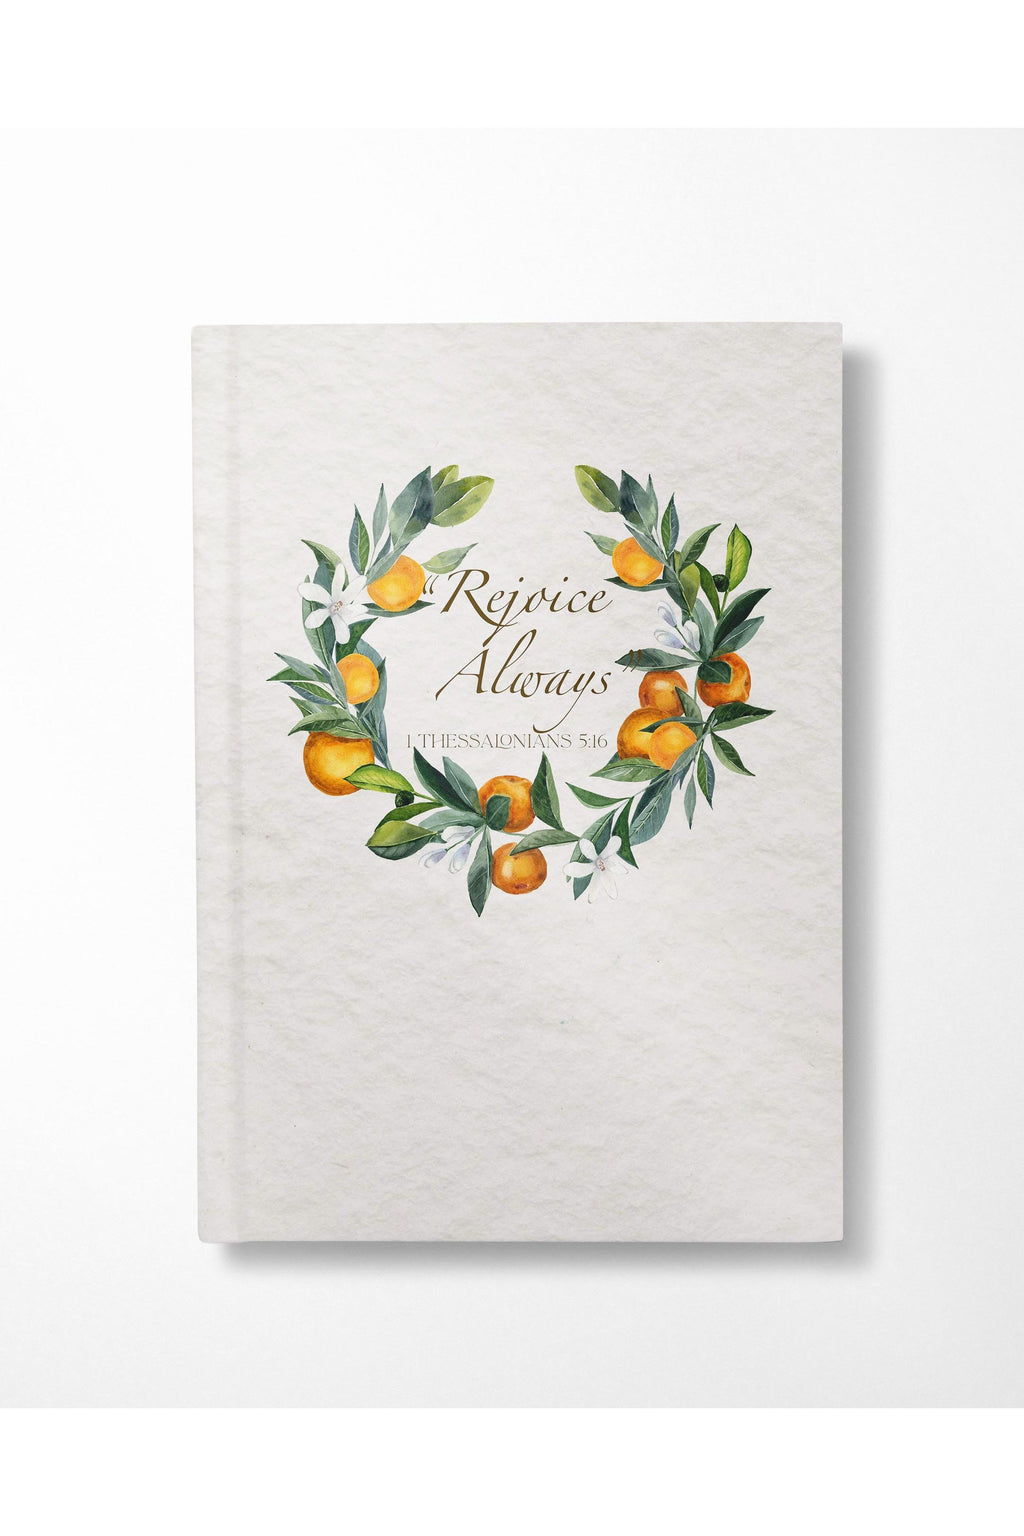 Rejoice Always Journal - Hausofassembly